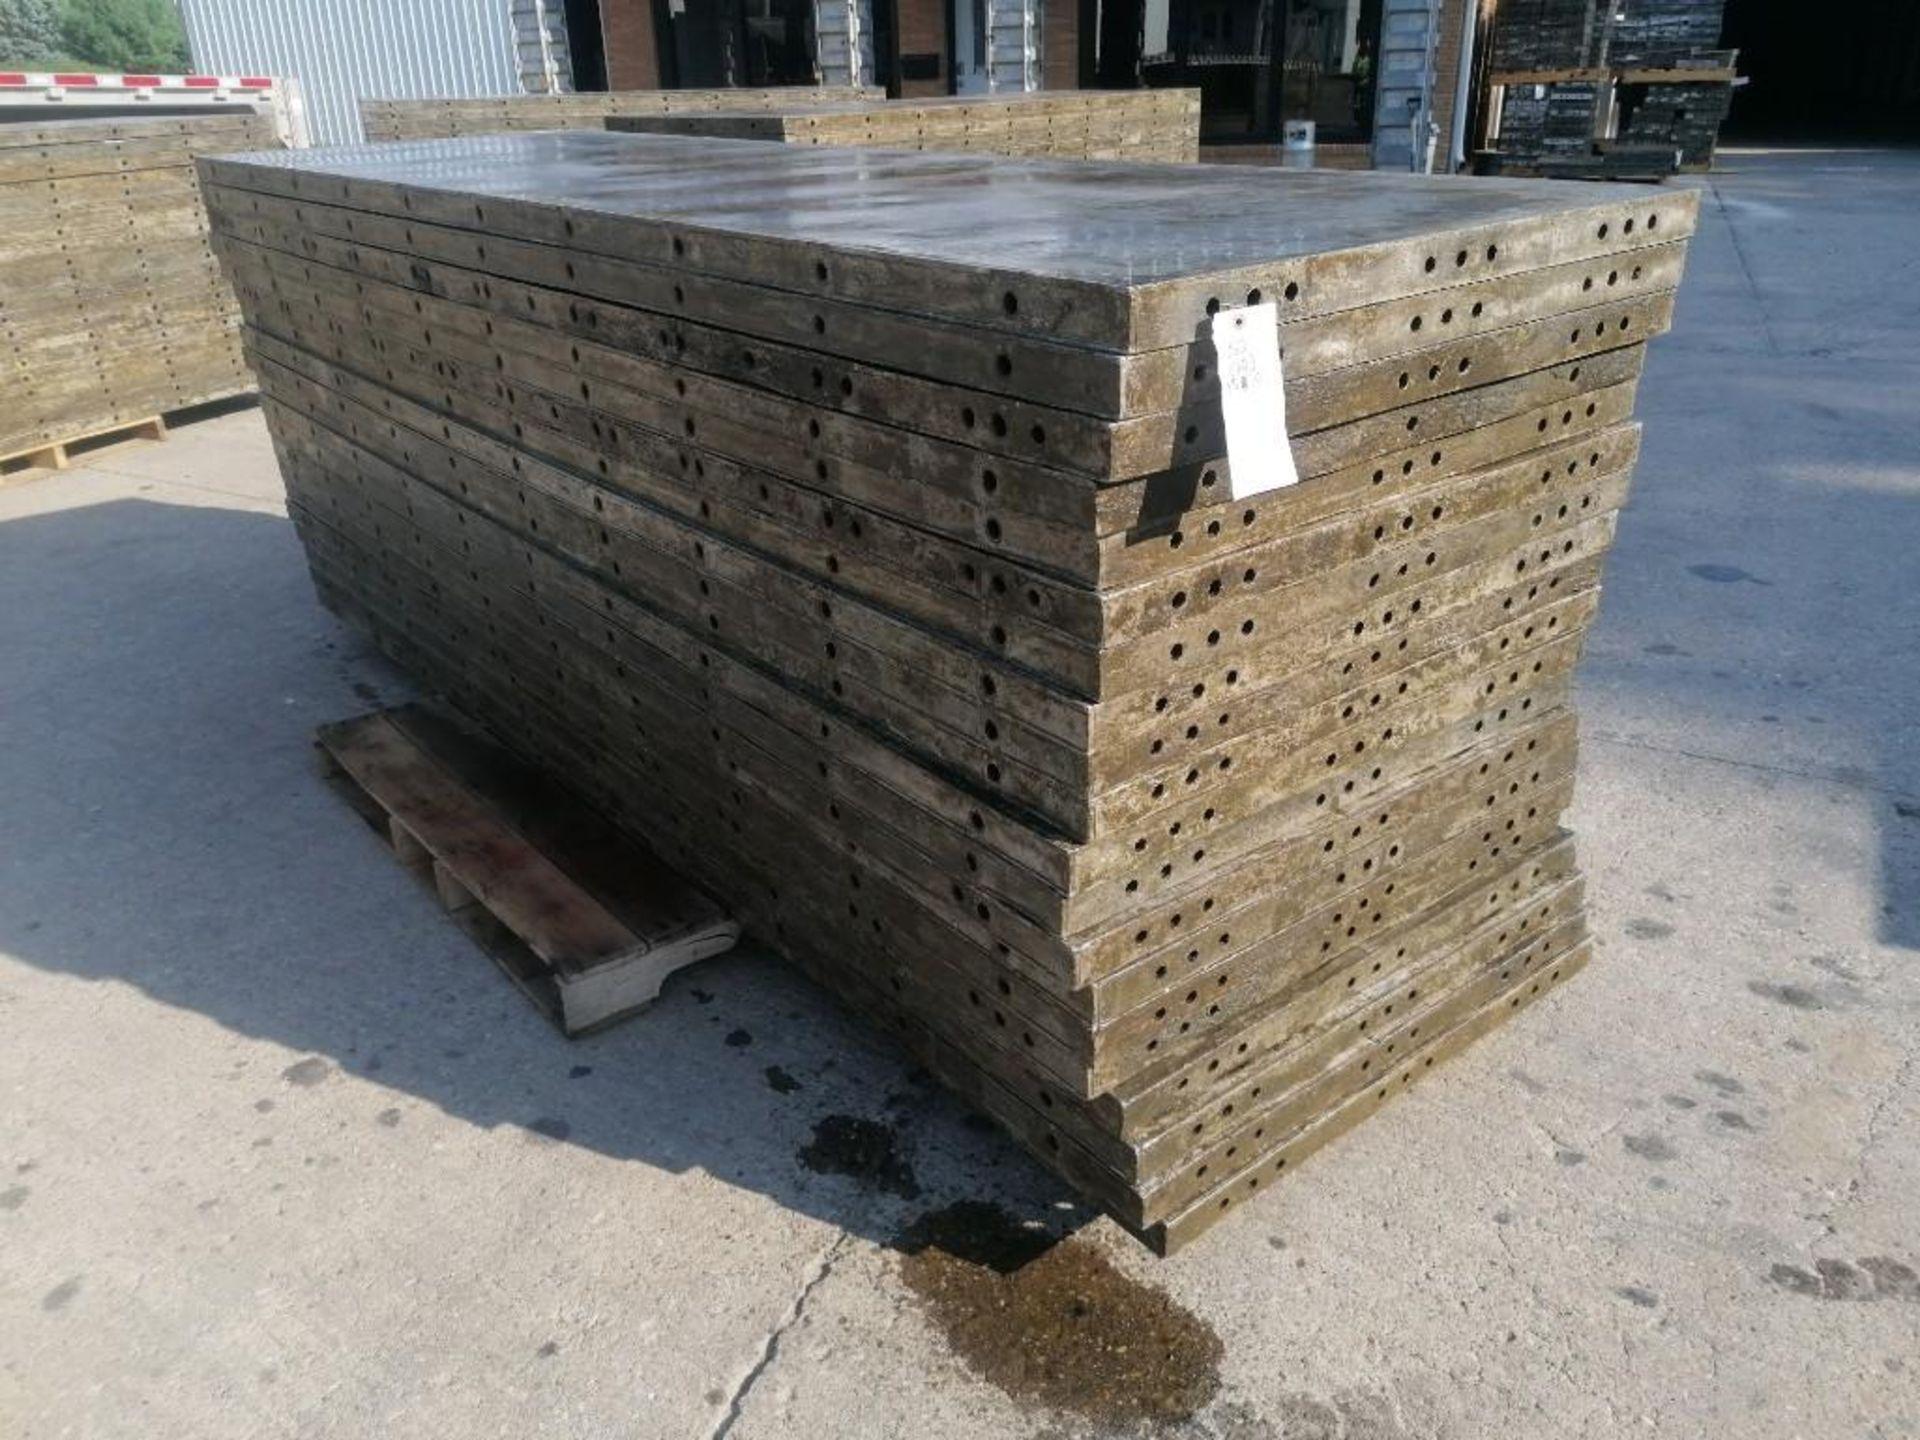 Lot 121 - (20) 3' x 10' Wall-Ties Aluminum Concrete Forms, Smooth 6-12 Hole Pattern. Located at 301 E Henry